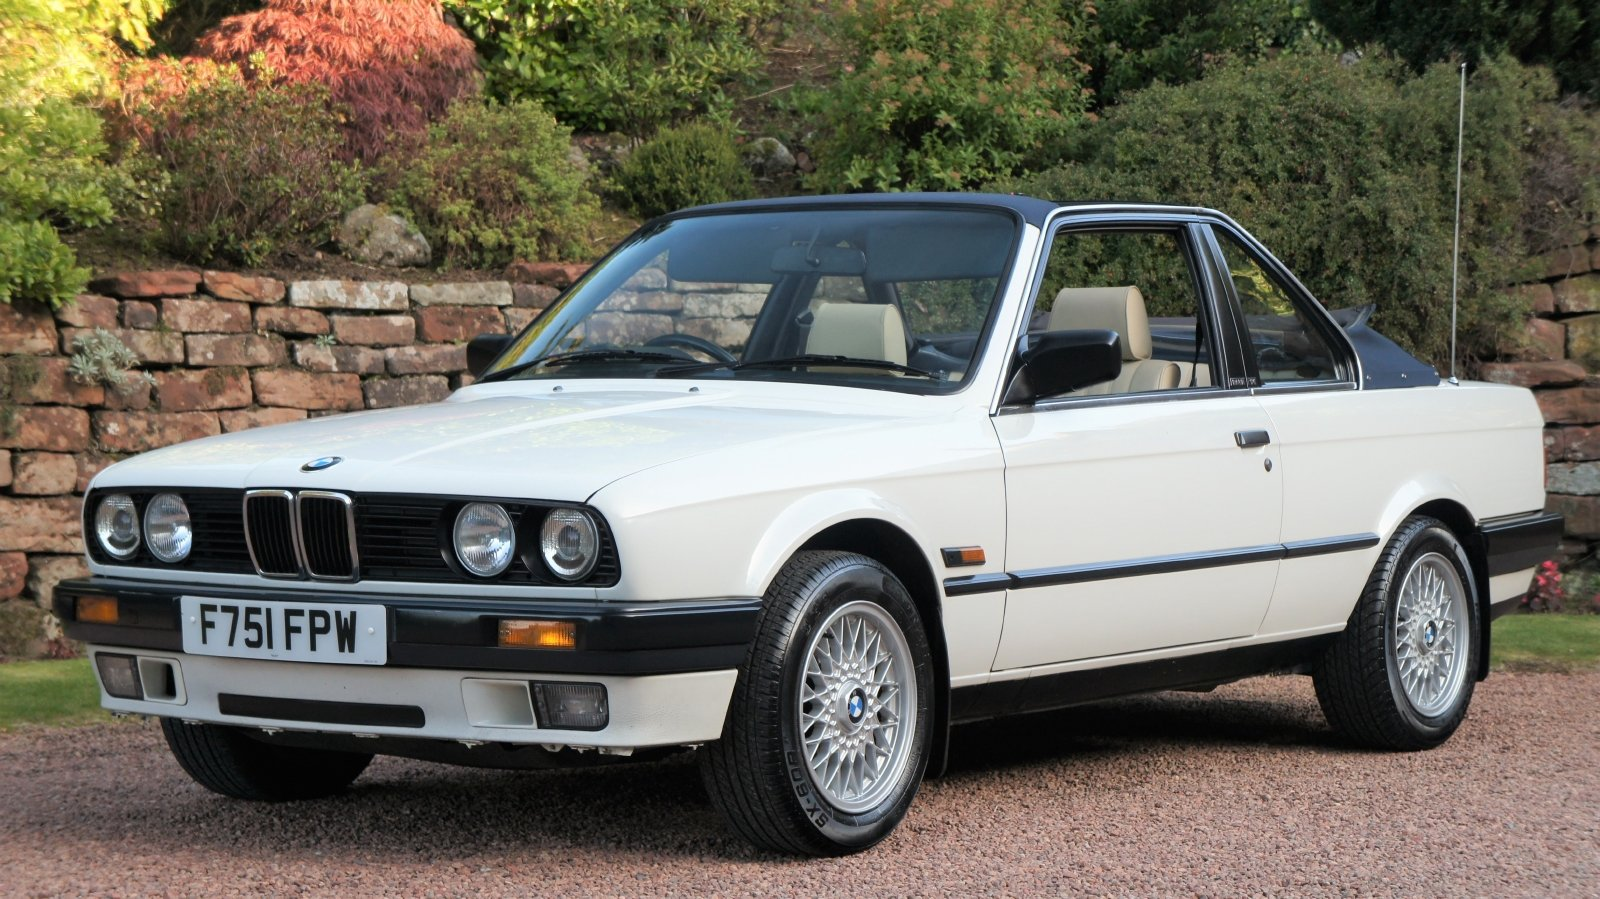 1989 BMW E30 320I BAUR CONVERTIBLE - EXCEPTIONAL SOLD (picture 2 of 6)